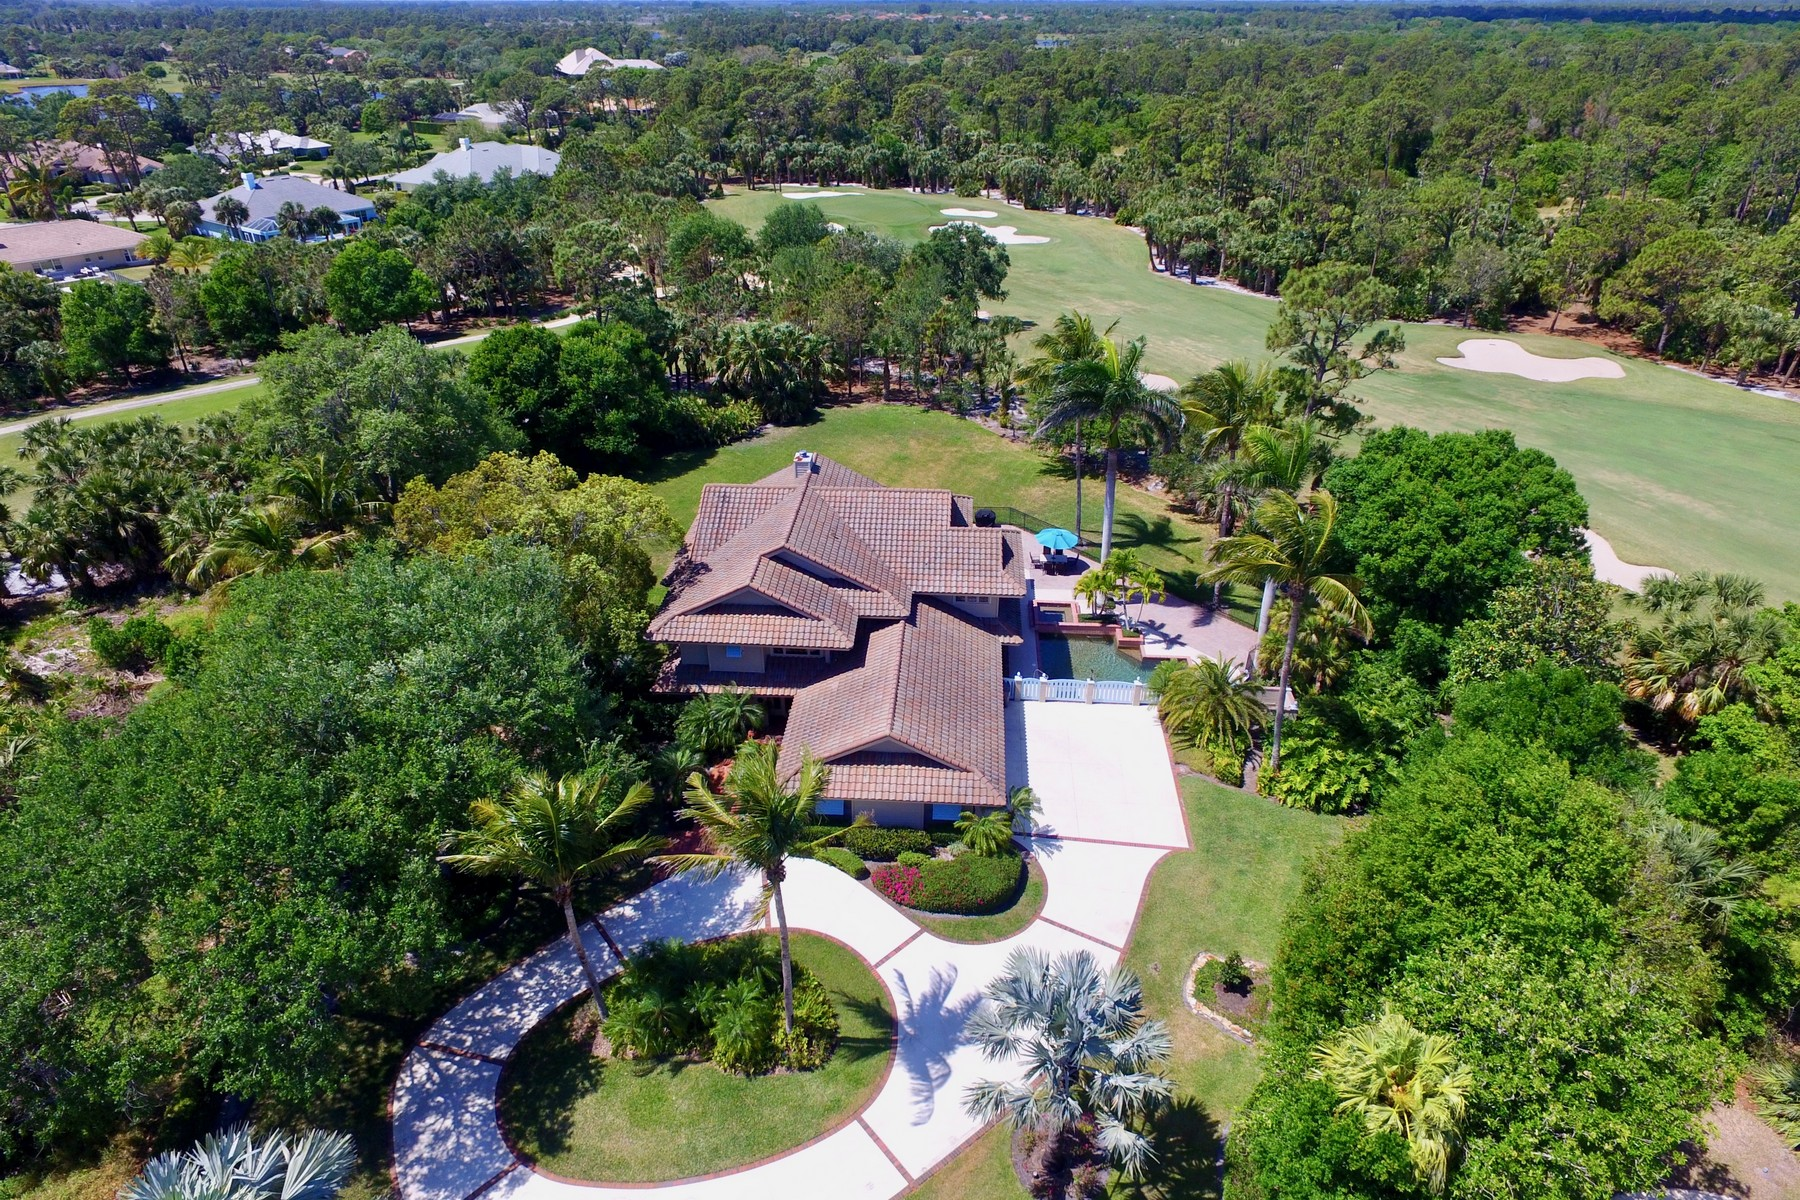 Single Family Home for Sale at Breathtaking 4200+ SF Masterpiece (Golf Optional) 5885 Turnberry Lane Vero Beach, Florida 32967 United States